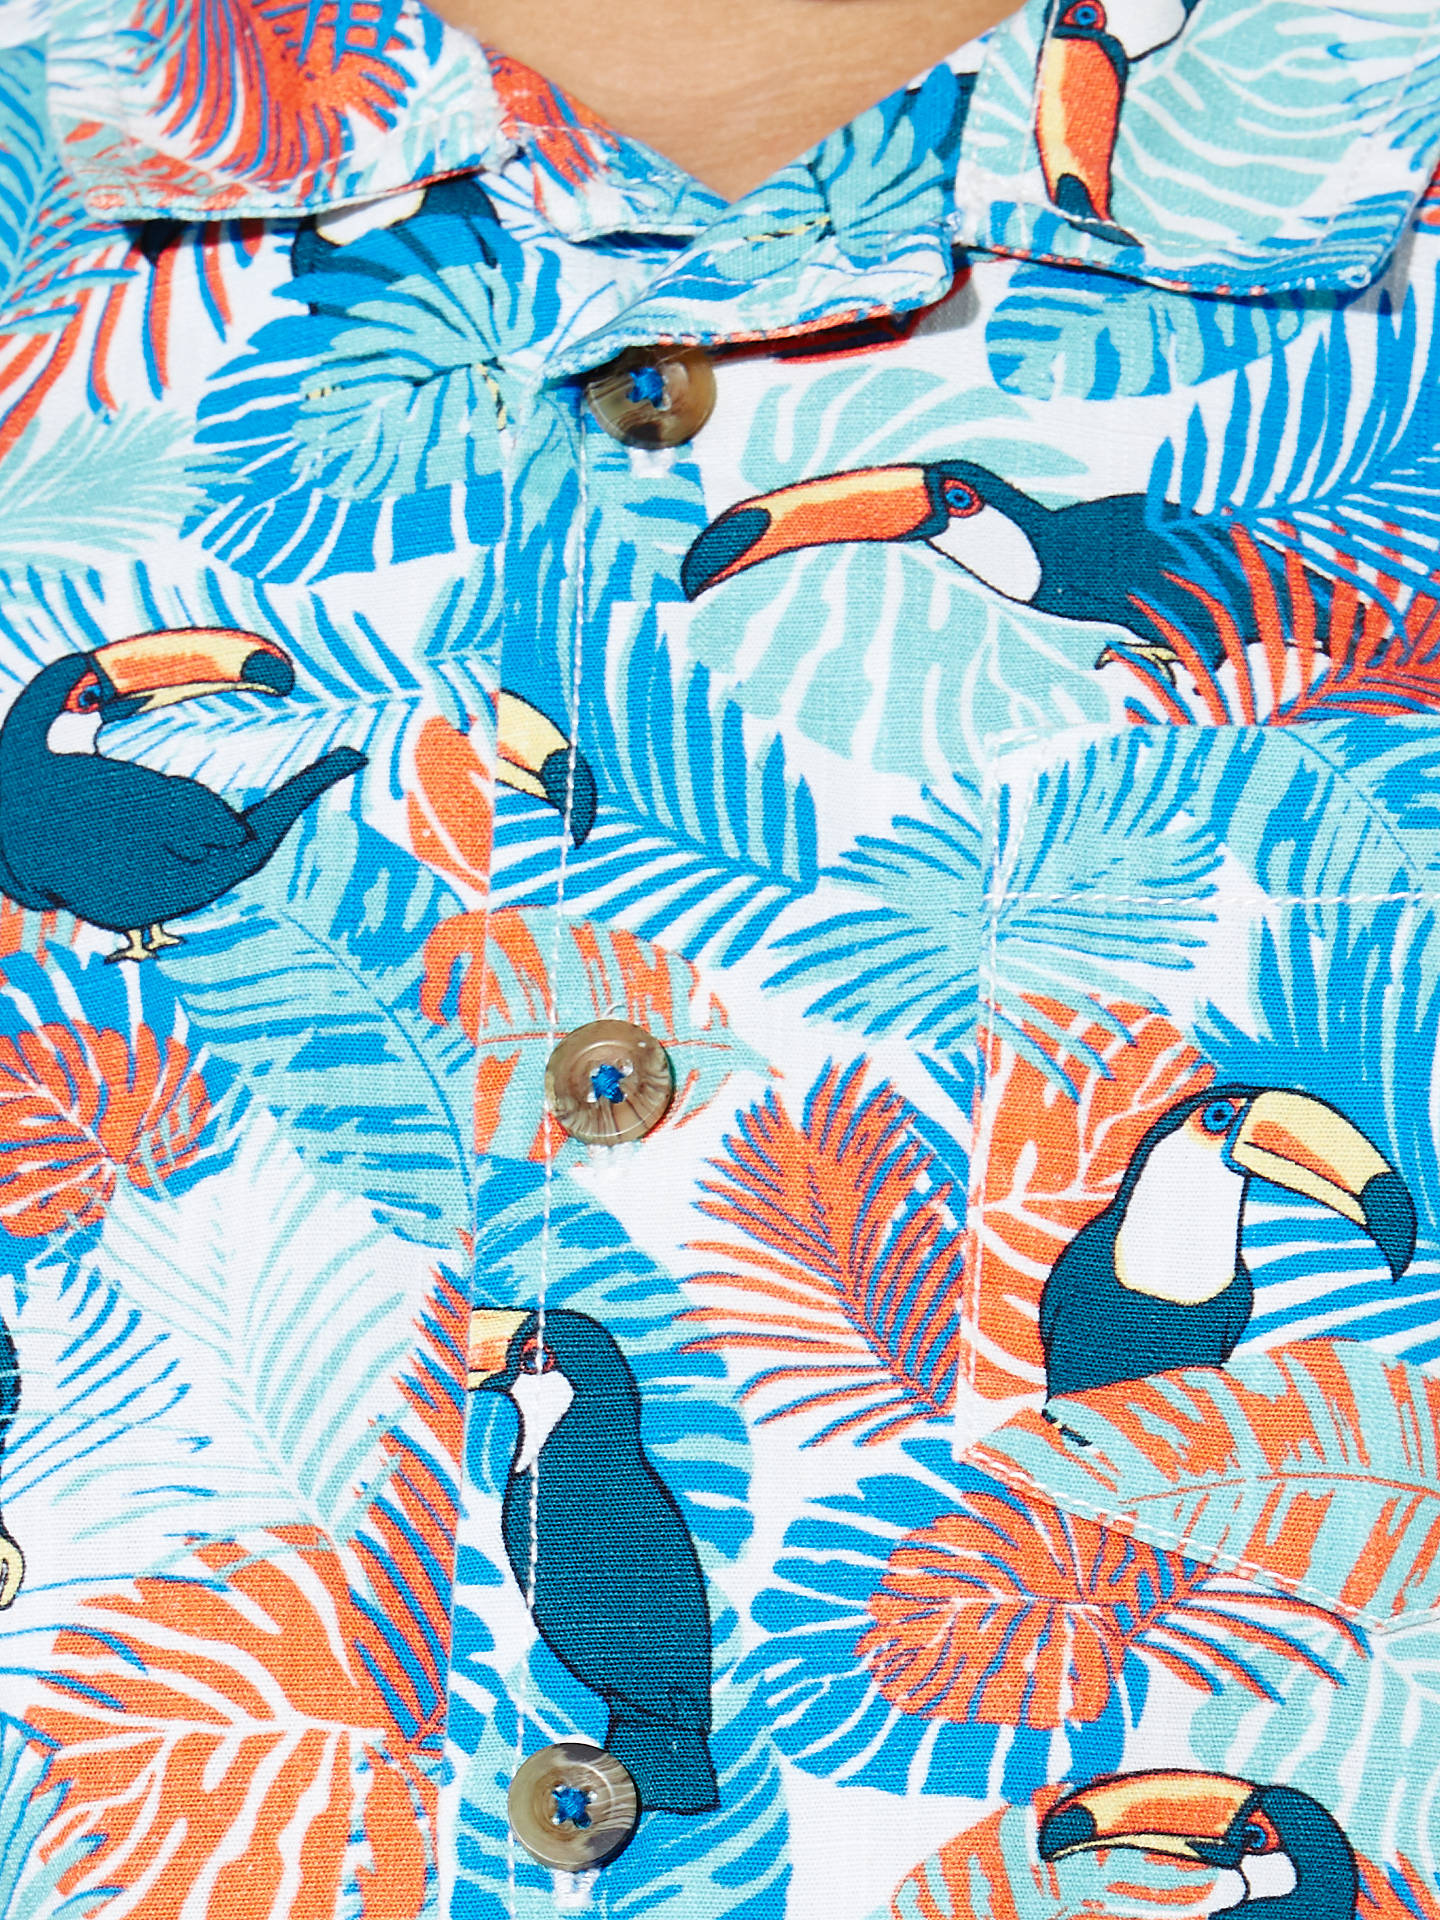 d5a2f68c2 ... Buy John Lewis Boys' Toucan Print Shirt, Multi, 2 years Online at  johnlewis